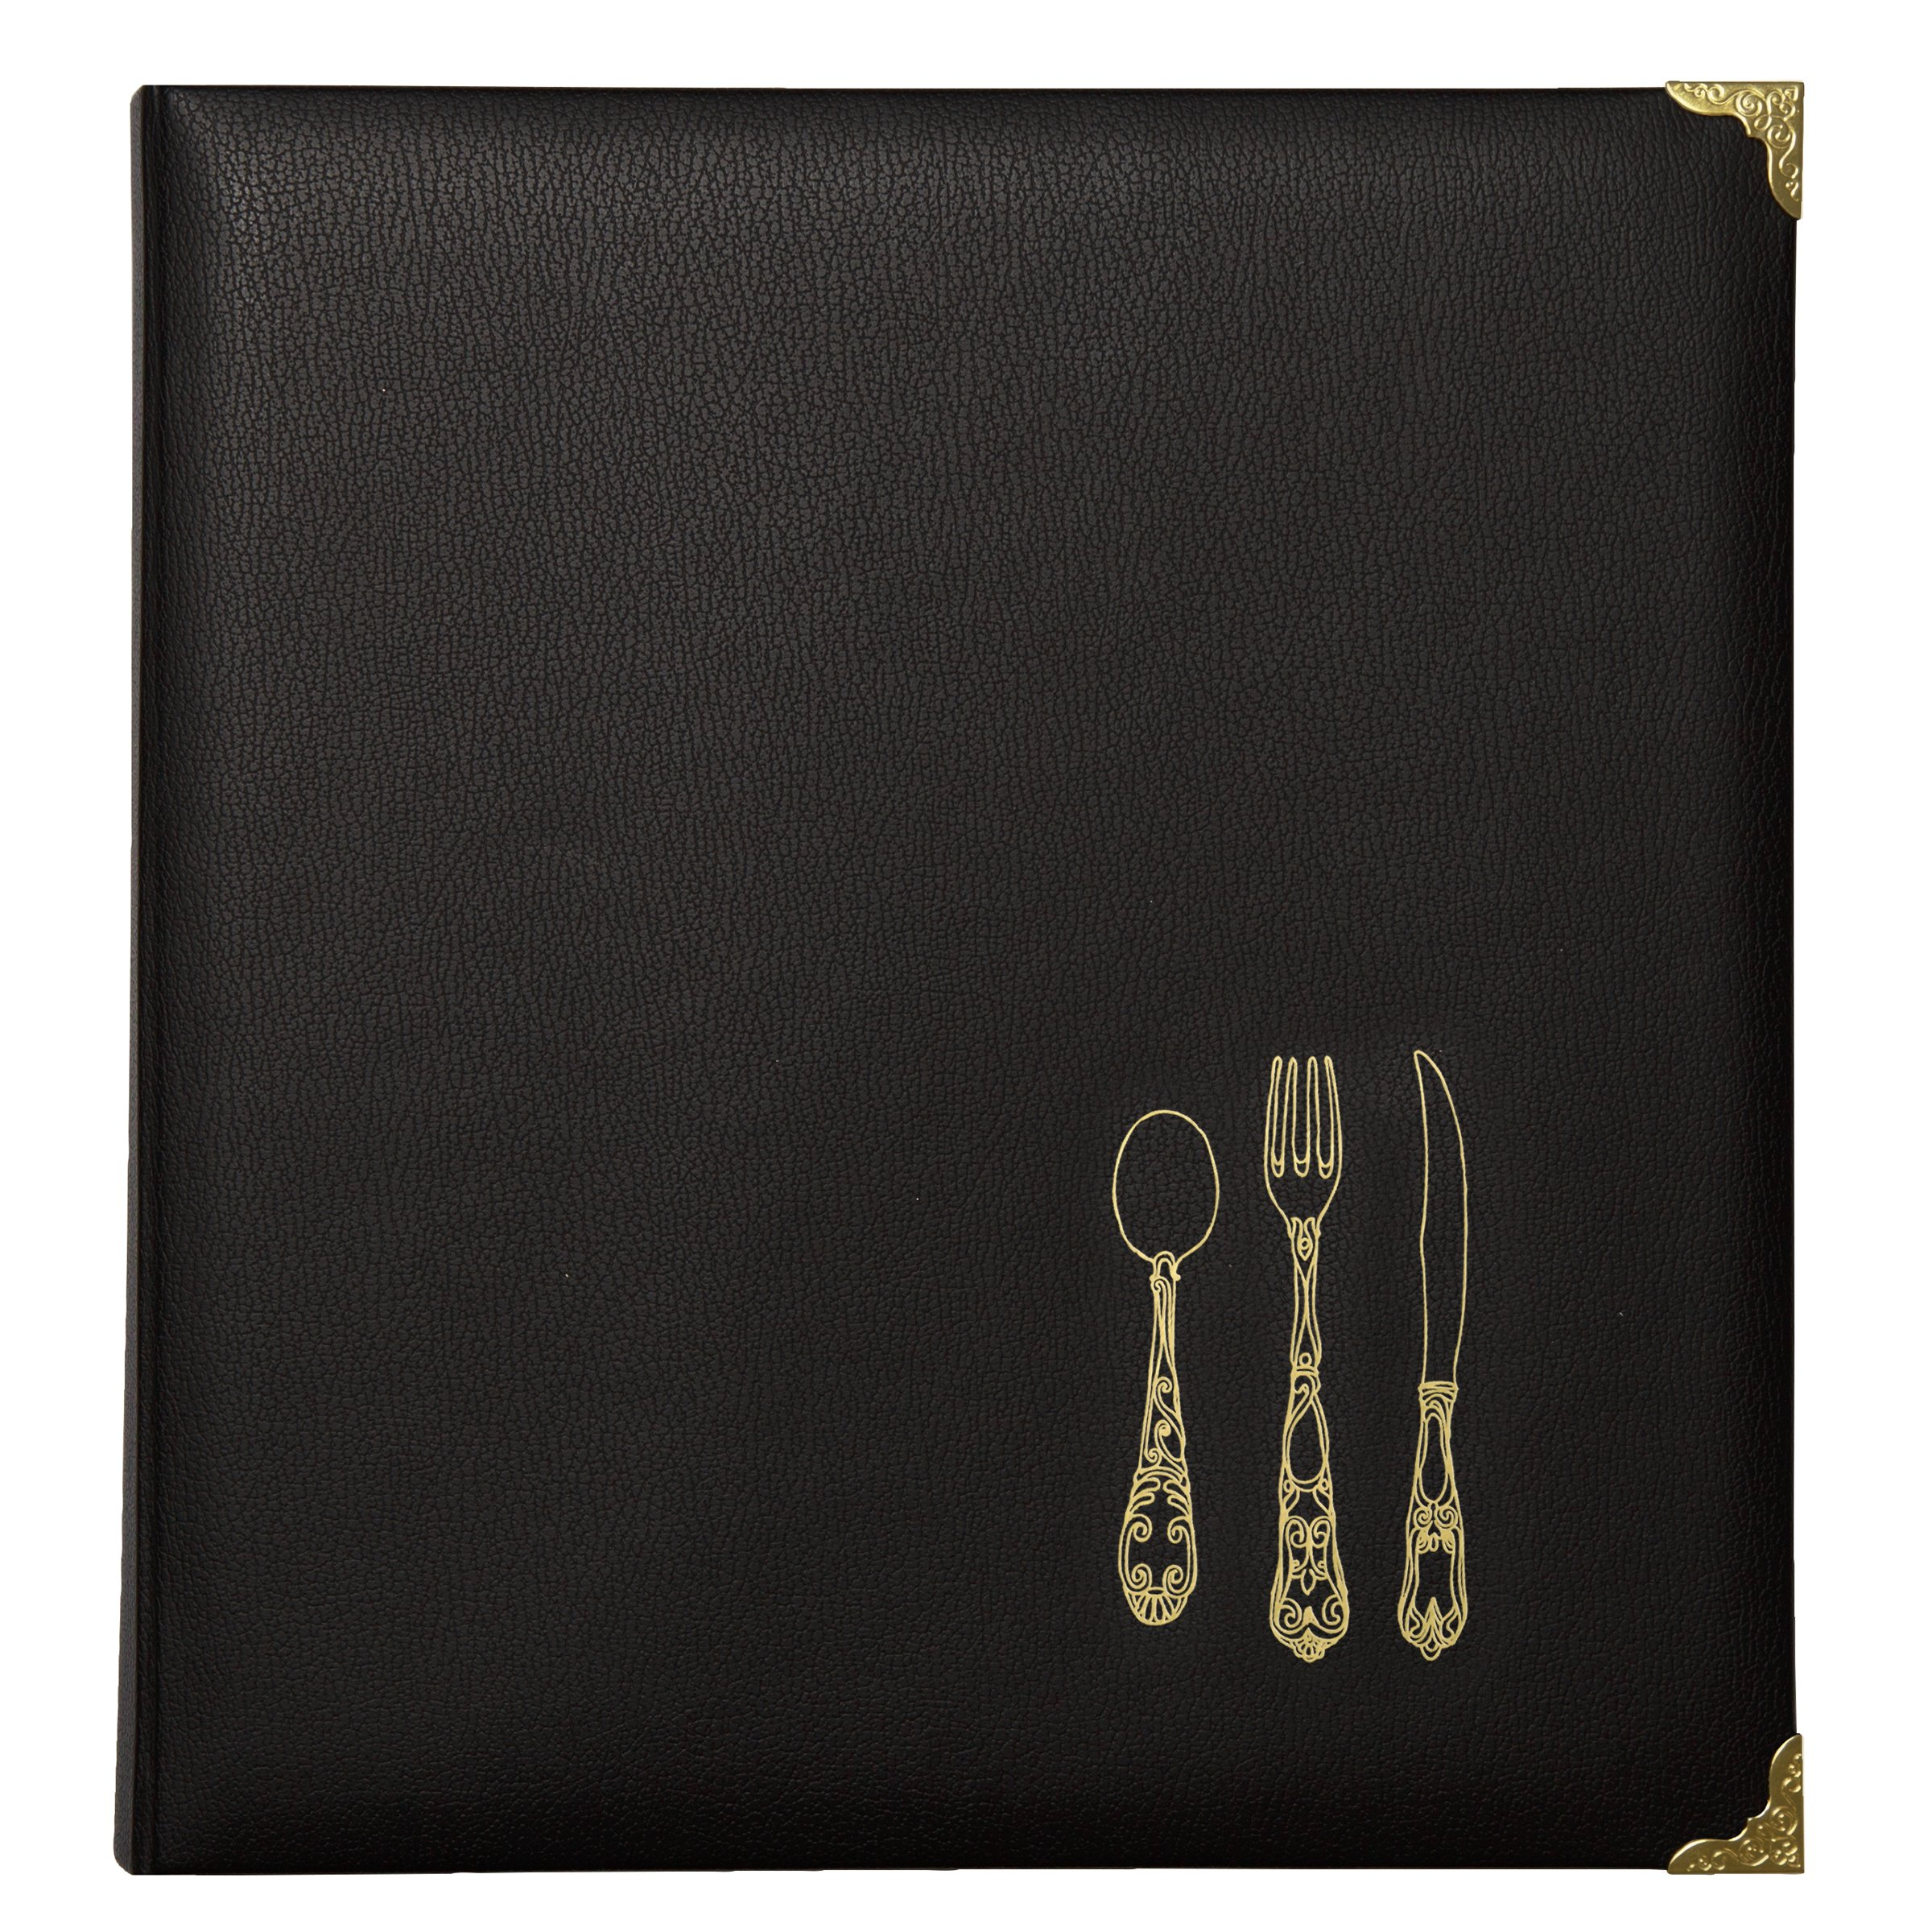 C.R. Gibson Leatherette Recipe Binder, Black/Multicolor by C.R. Gibson